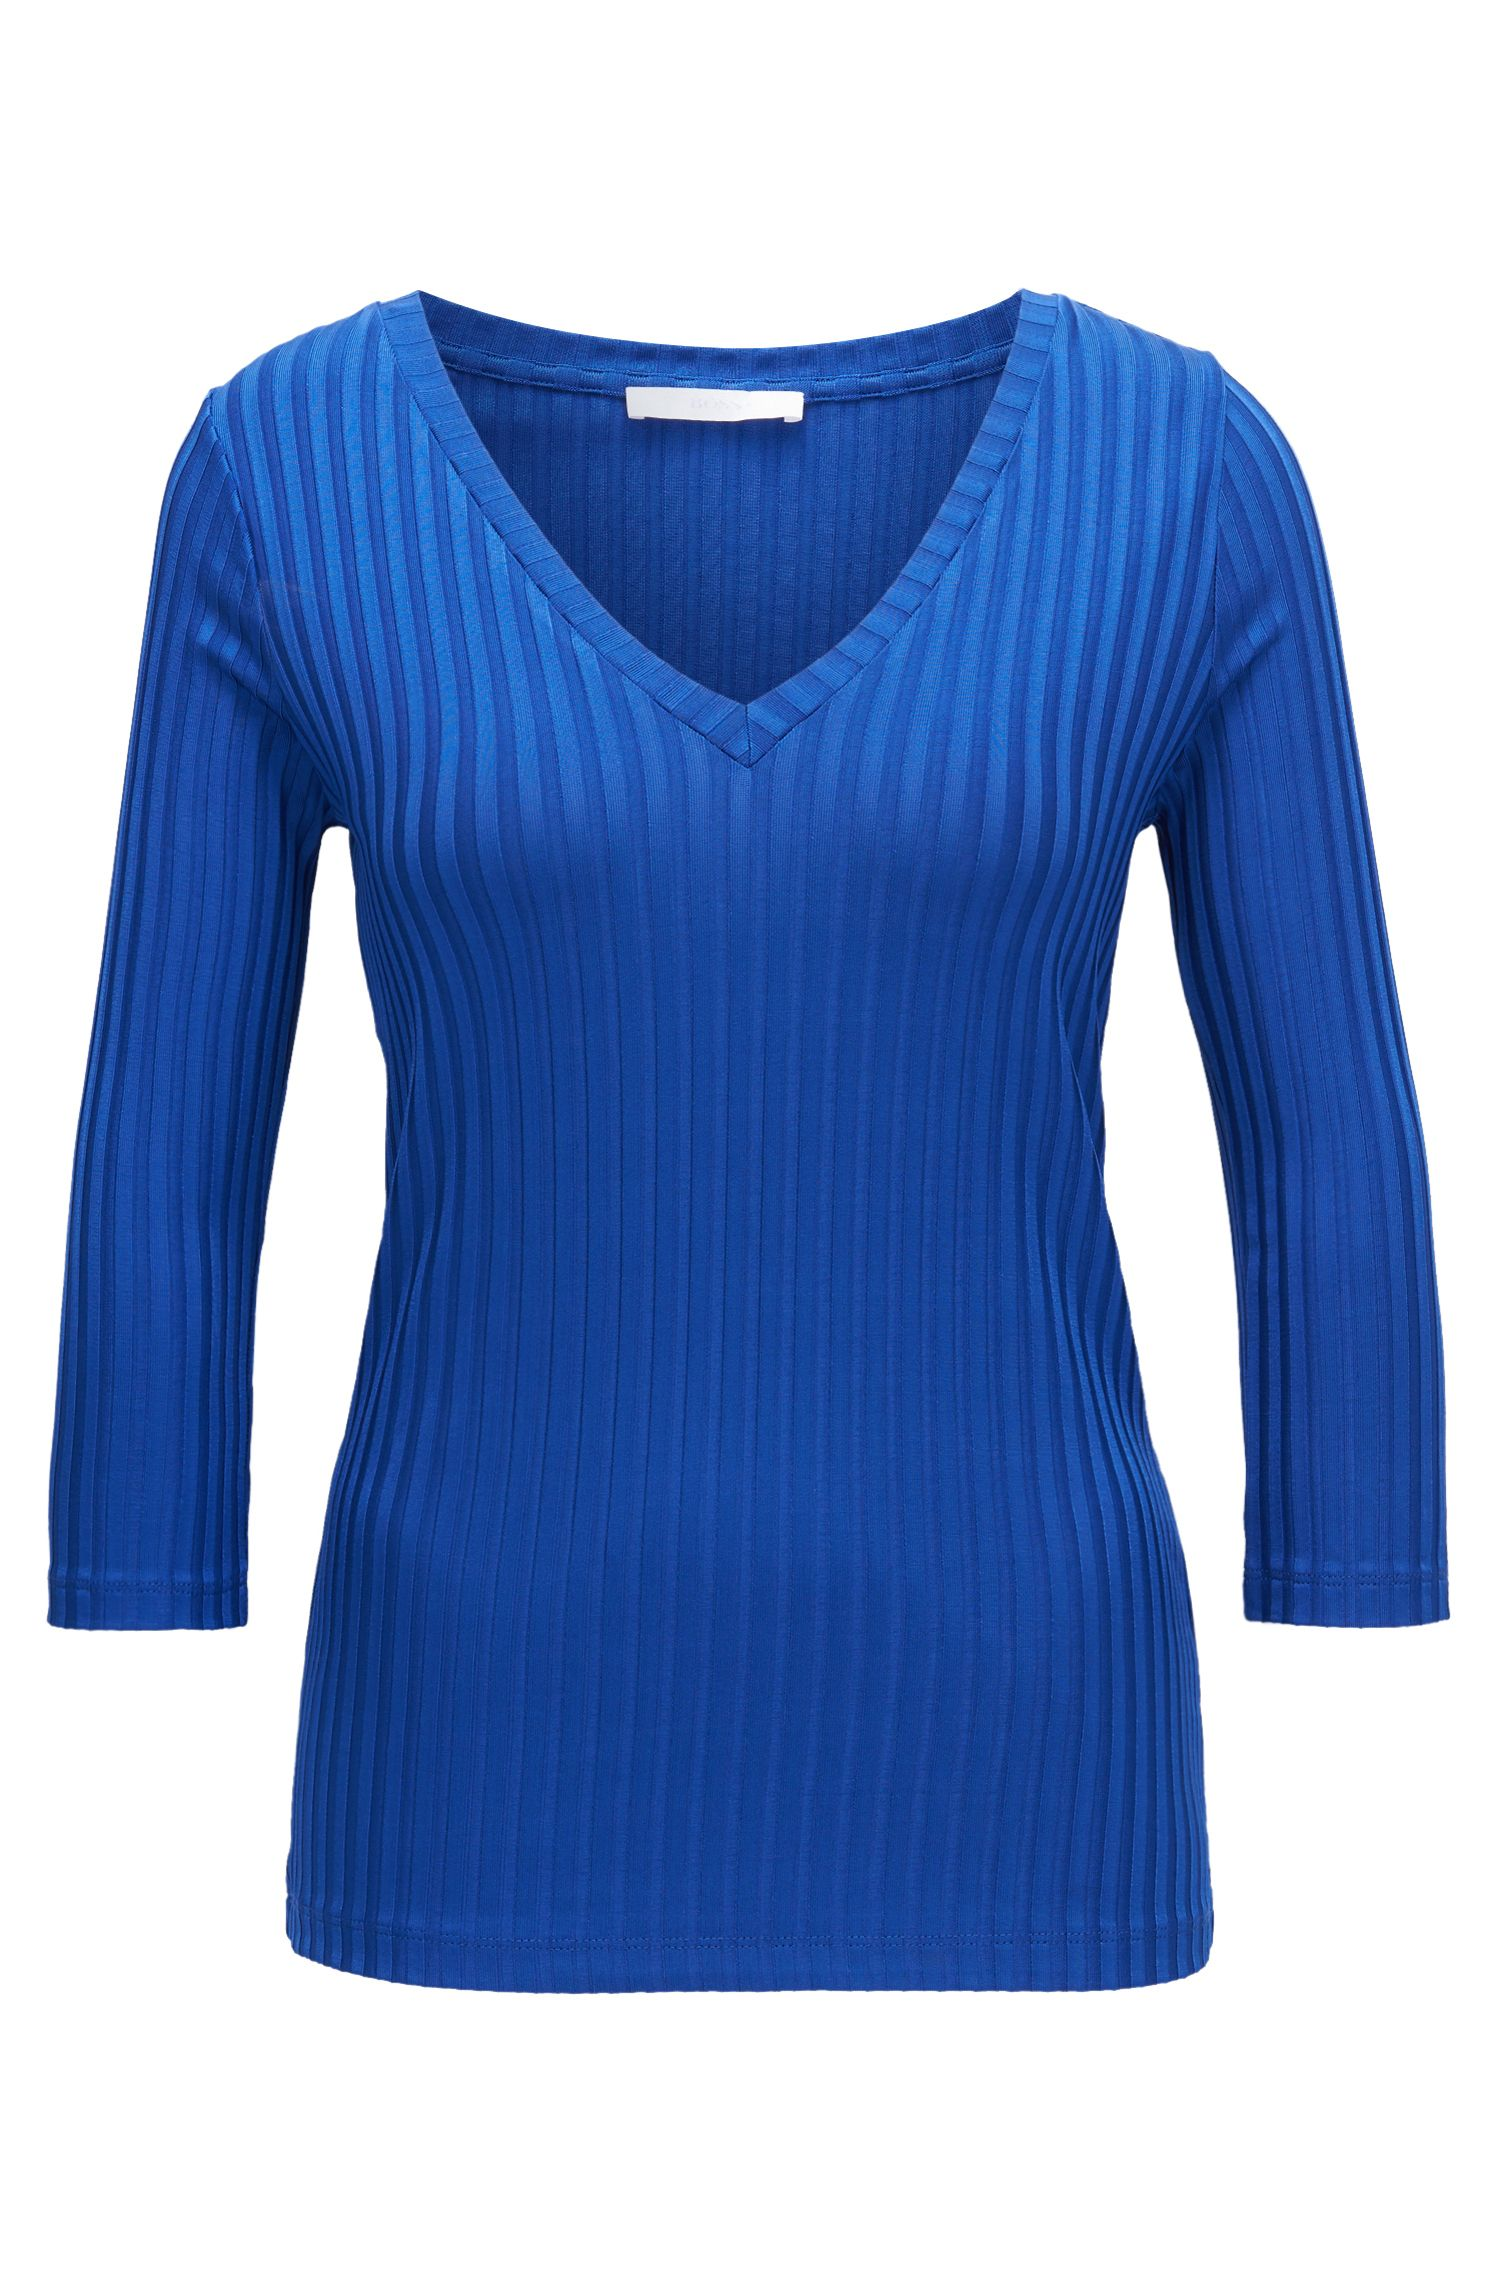 V-neck top in ribbed jersey